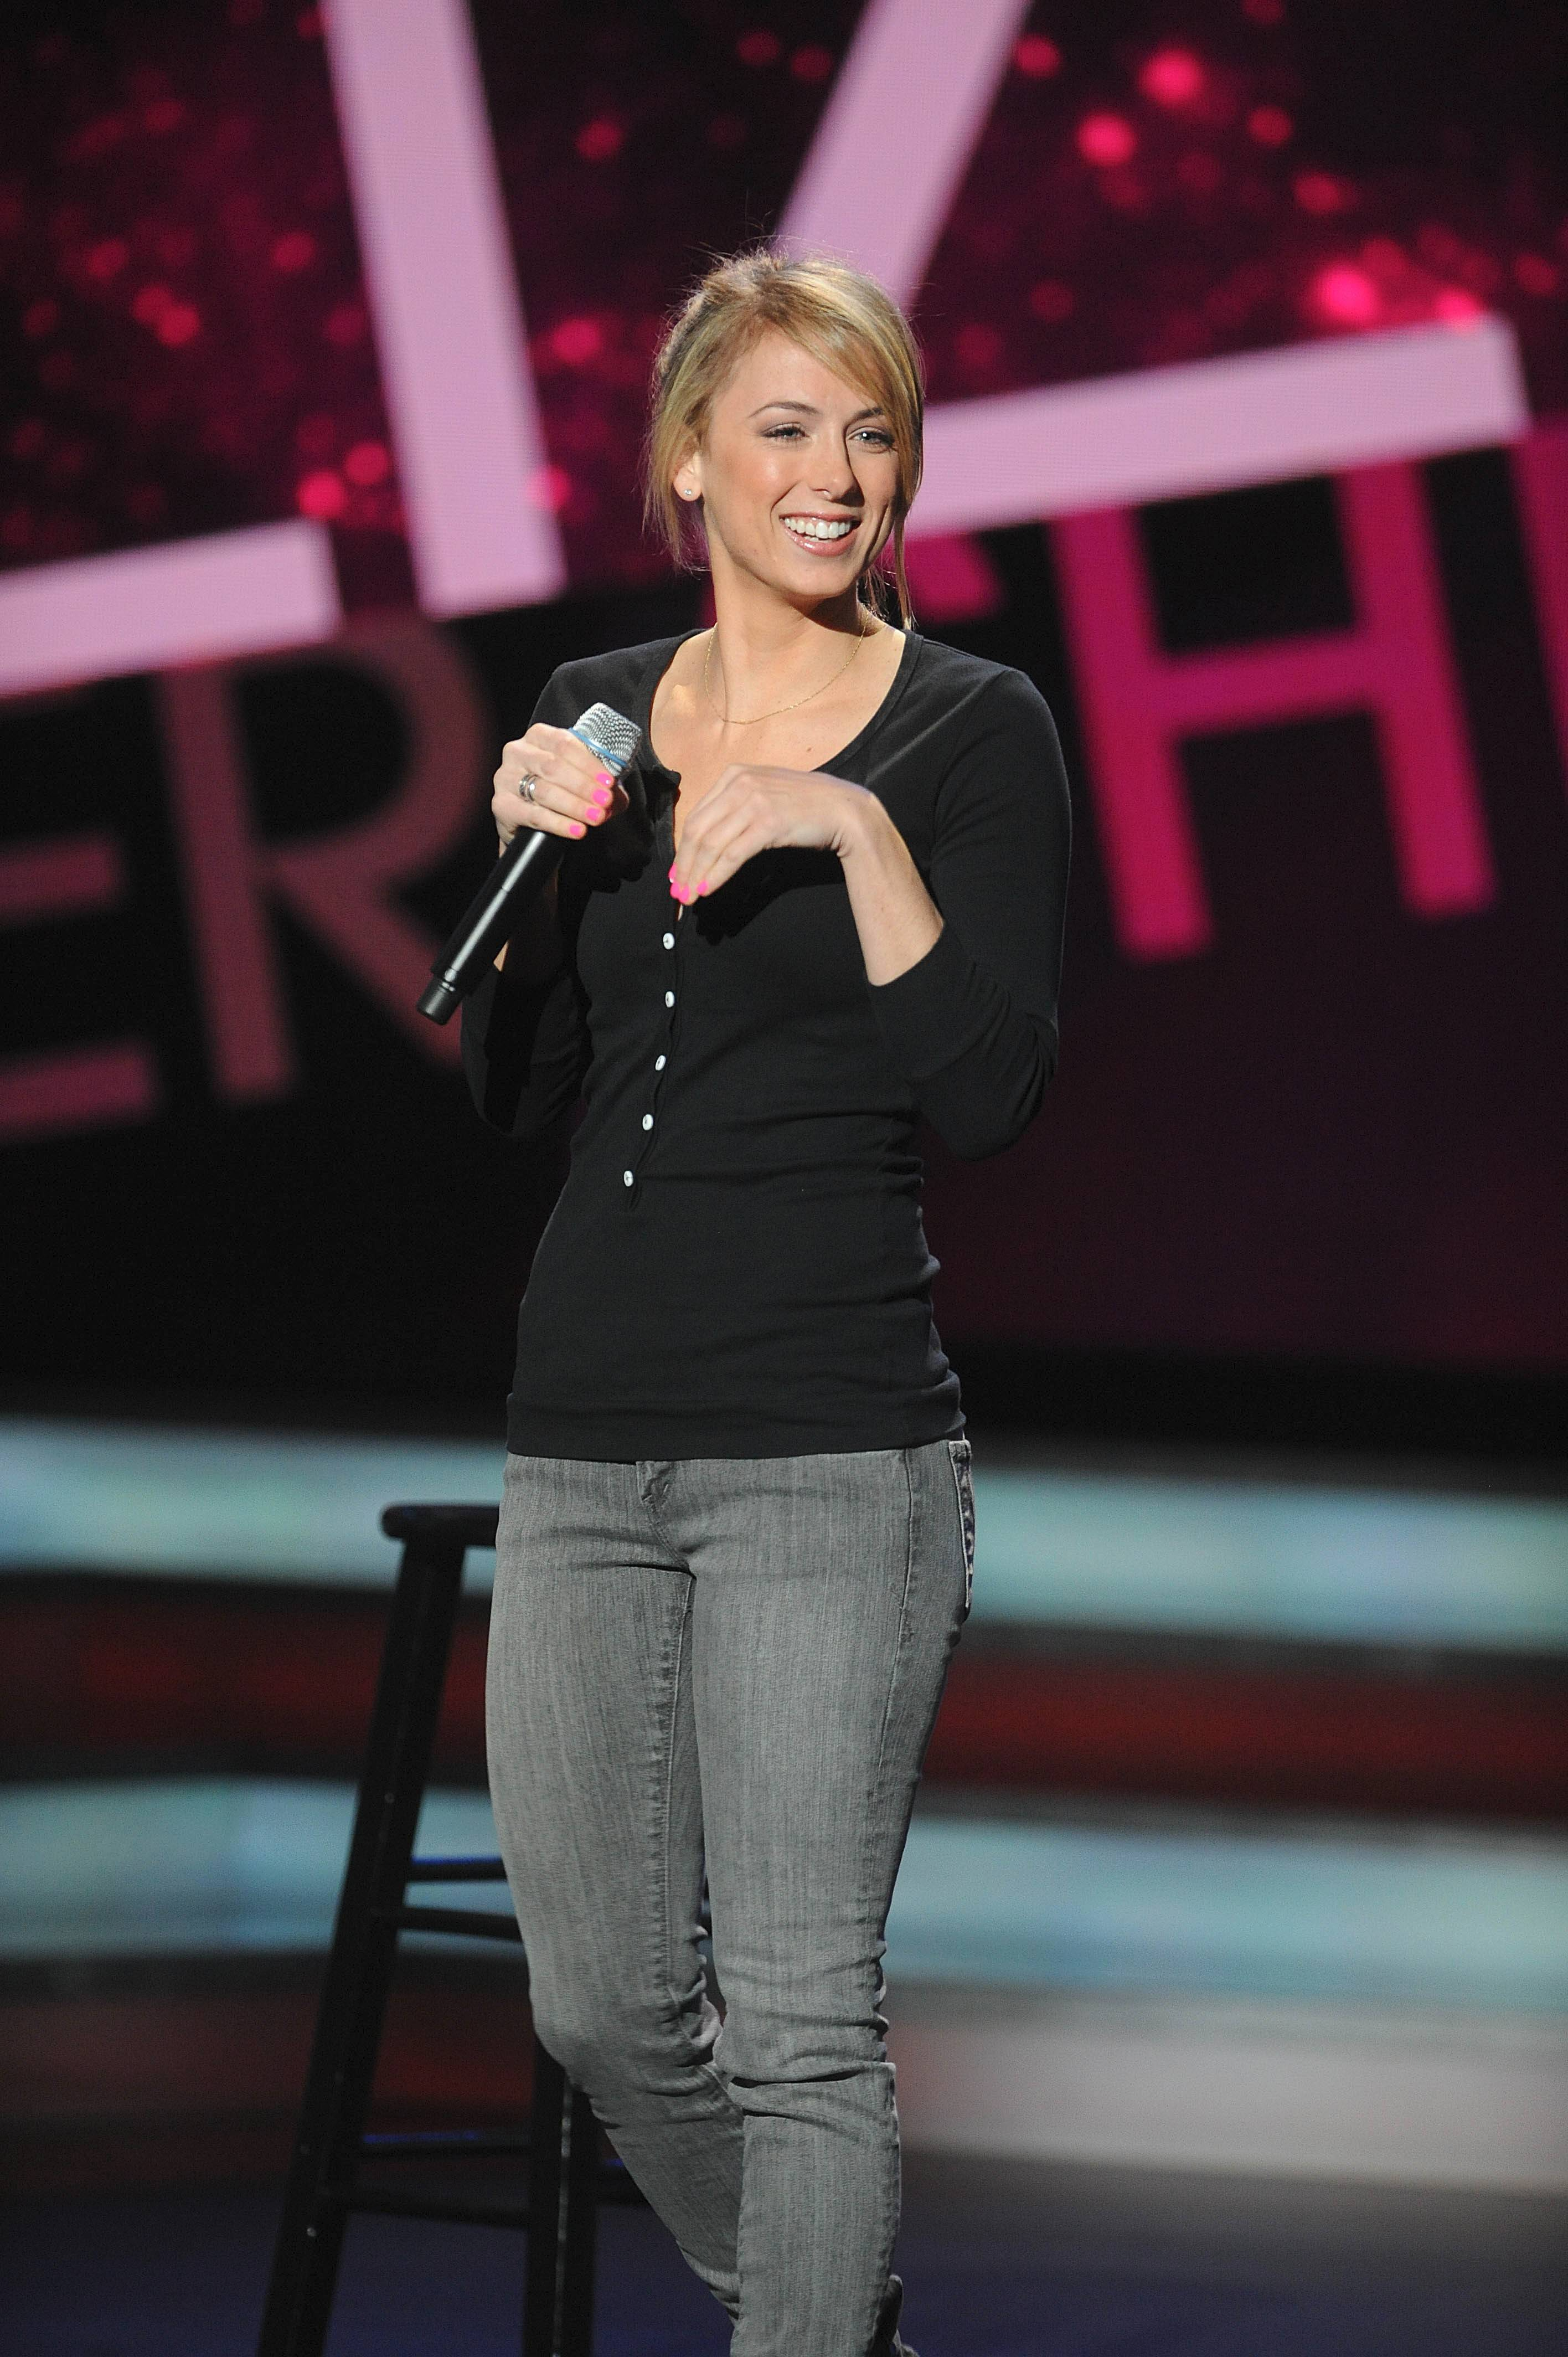 Comedian Iliza Shlesinger performs at Zanies in Rosemont from Thursday, May 14, through Saturday, May 16.